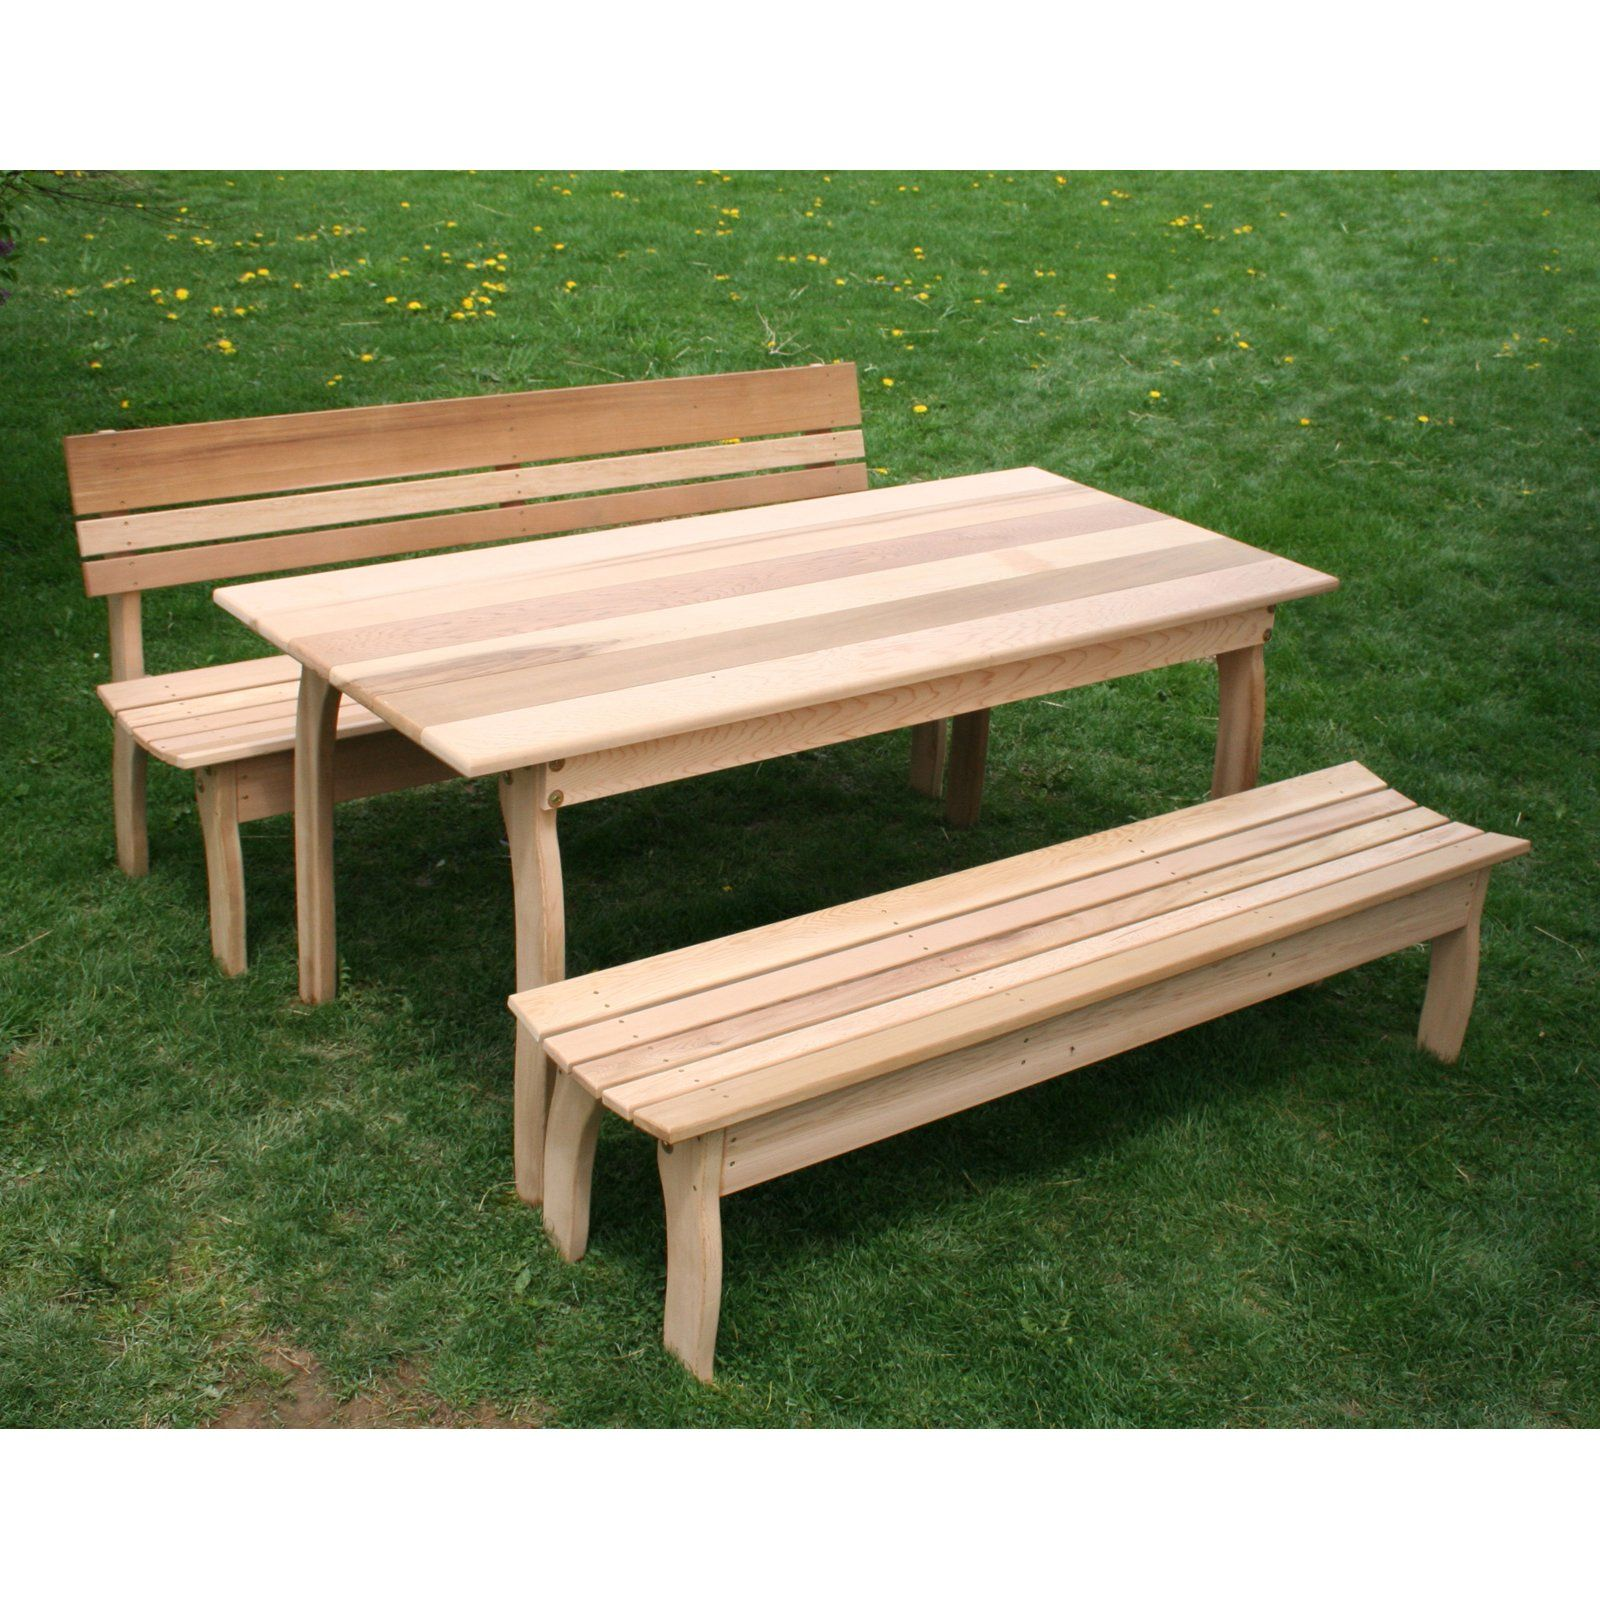 Have To Have It Creekvine Designs Cedar Odd Couple Picnic Table Set 1019 99 Patio Dining Set Couples Dining Dining Set